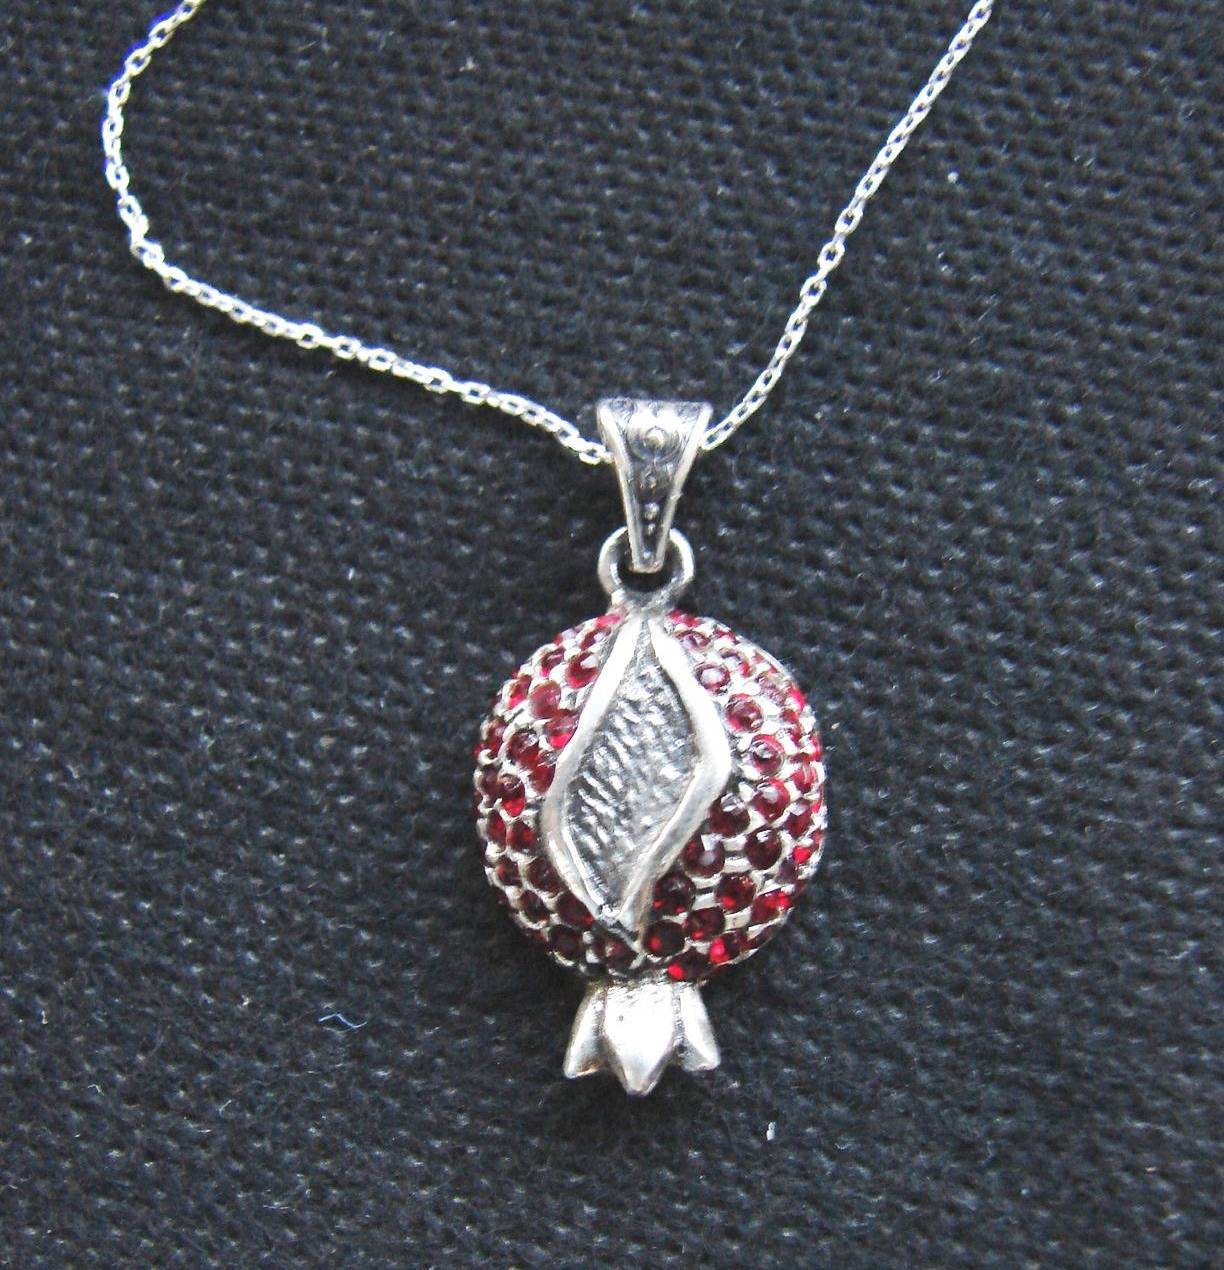 Pendant Pomegranate Sterling Silver 925 With By Armhandmade On Zibbet